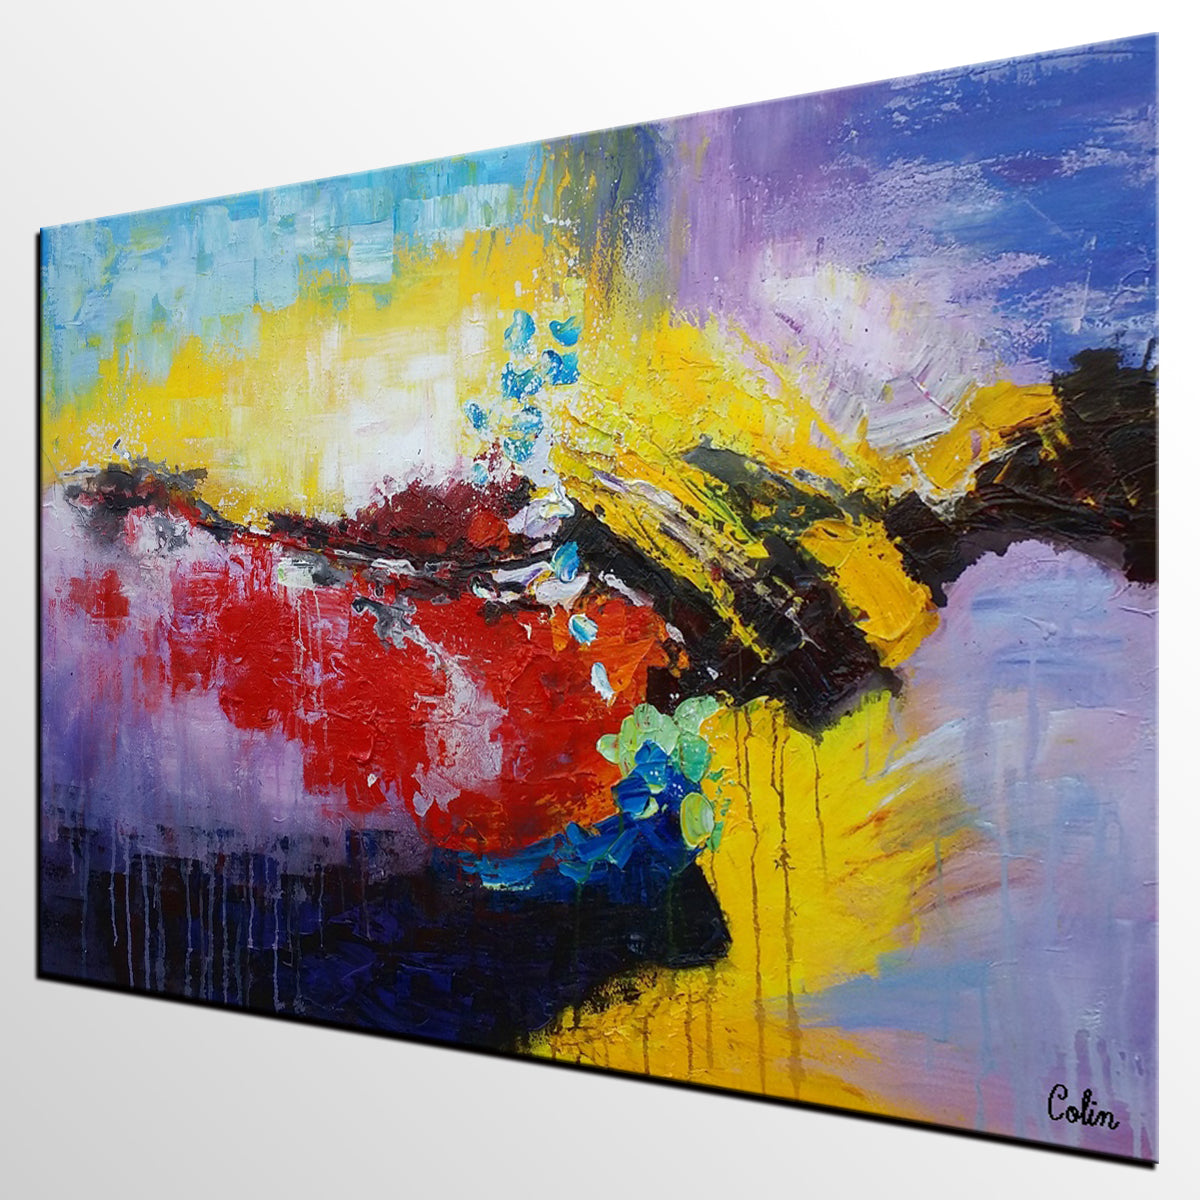 Wall Art, Abstract Landscape Painting, Large Painting, Canvas Art, Wall Art, Abstract Artwork, Canvas Painting, Contemporary Painting 207